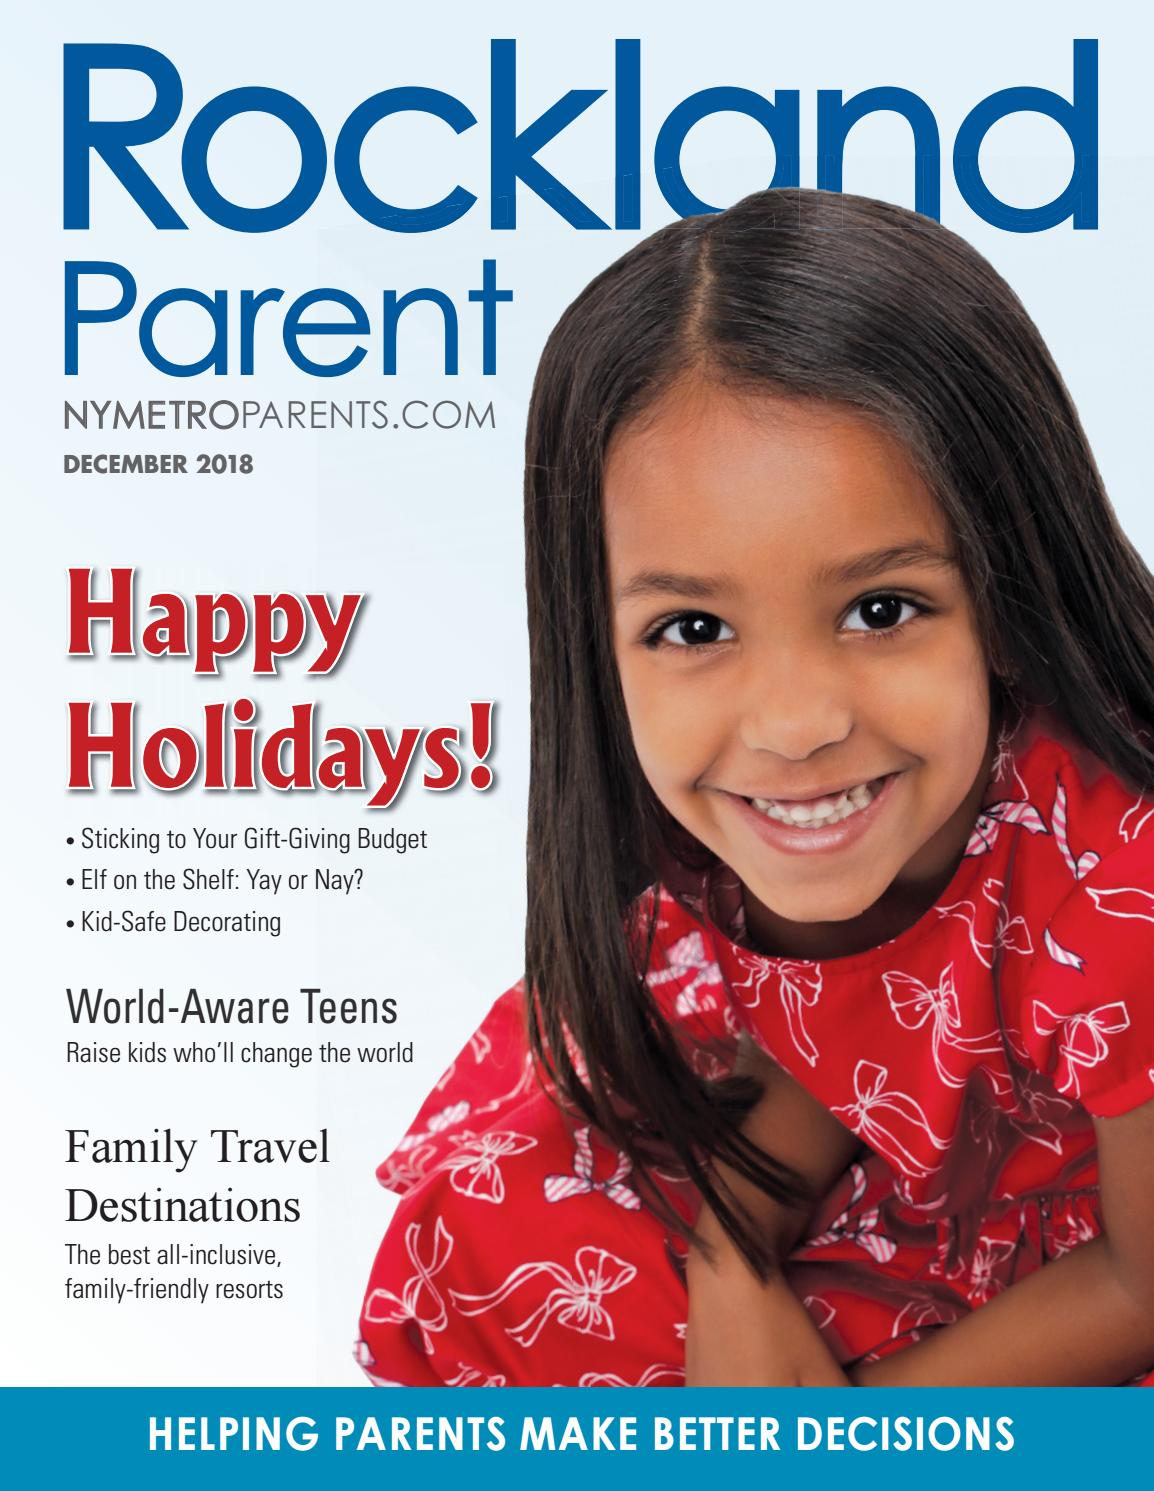 Rockland Parent December 2018